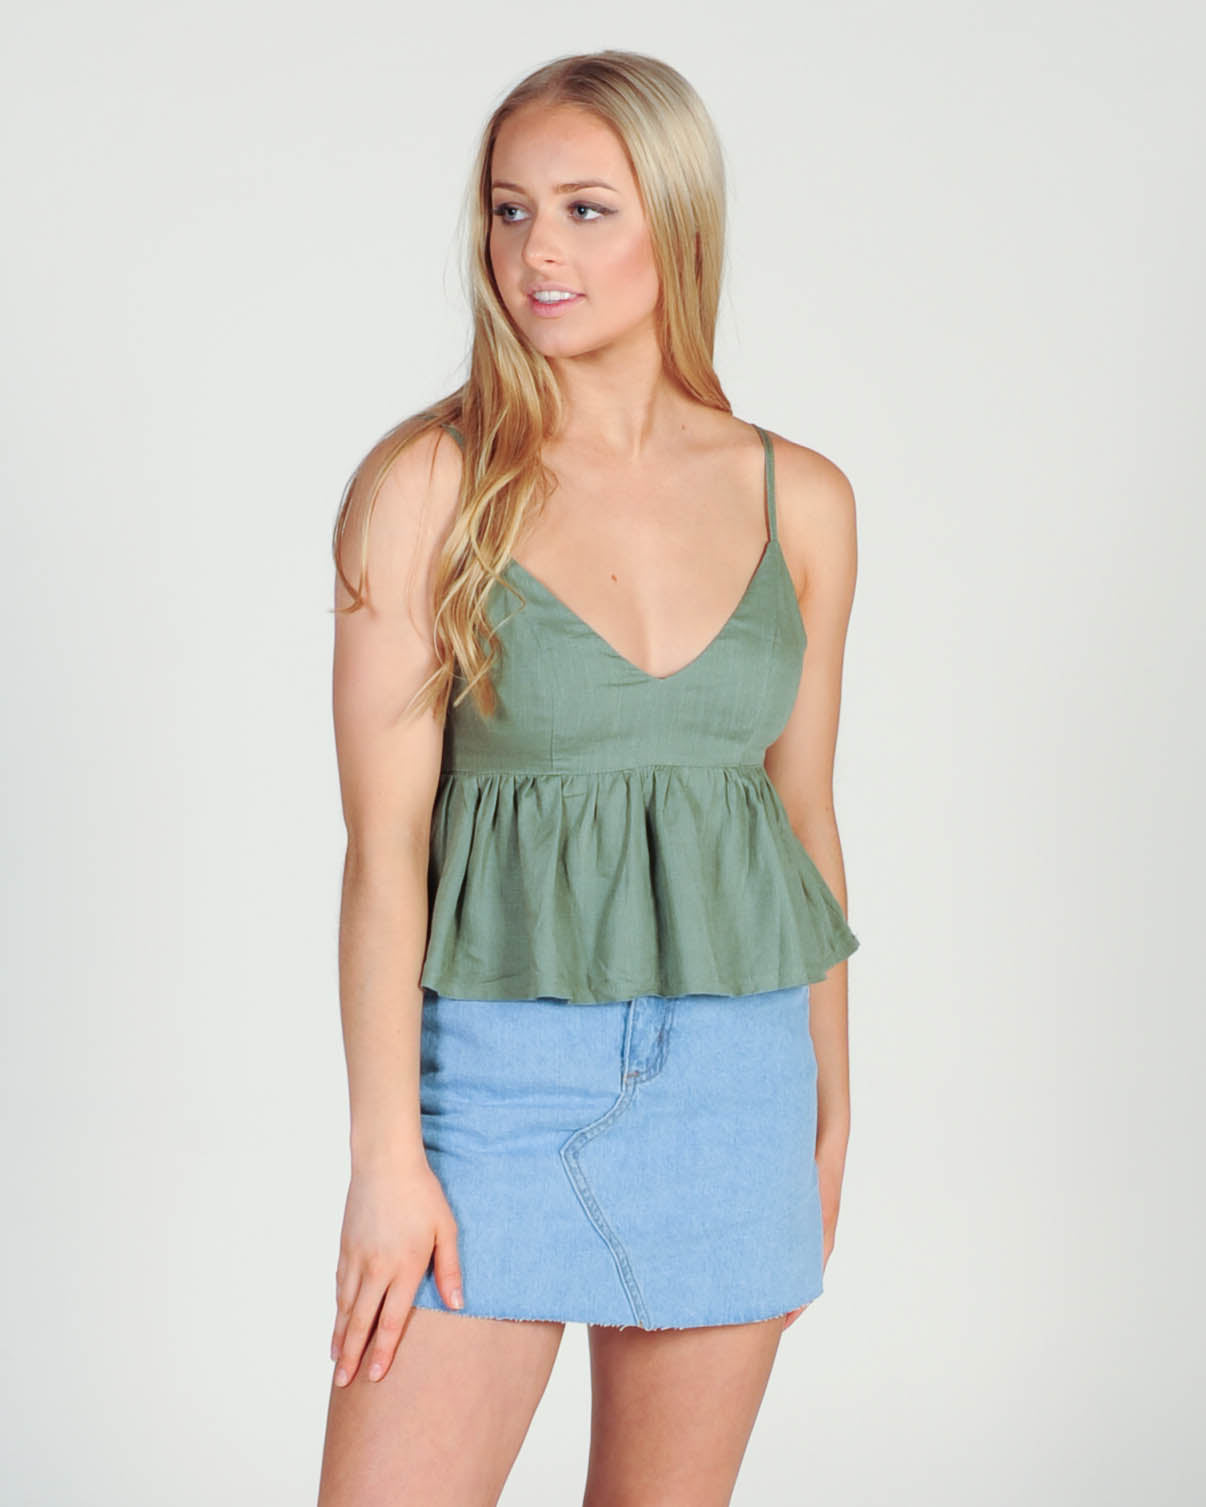 Summer Ready Top - Khaki